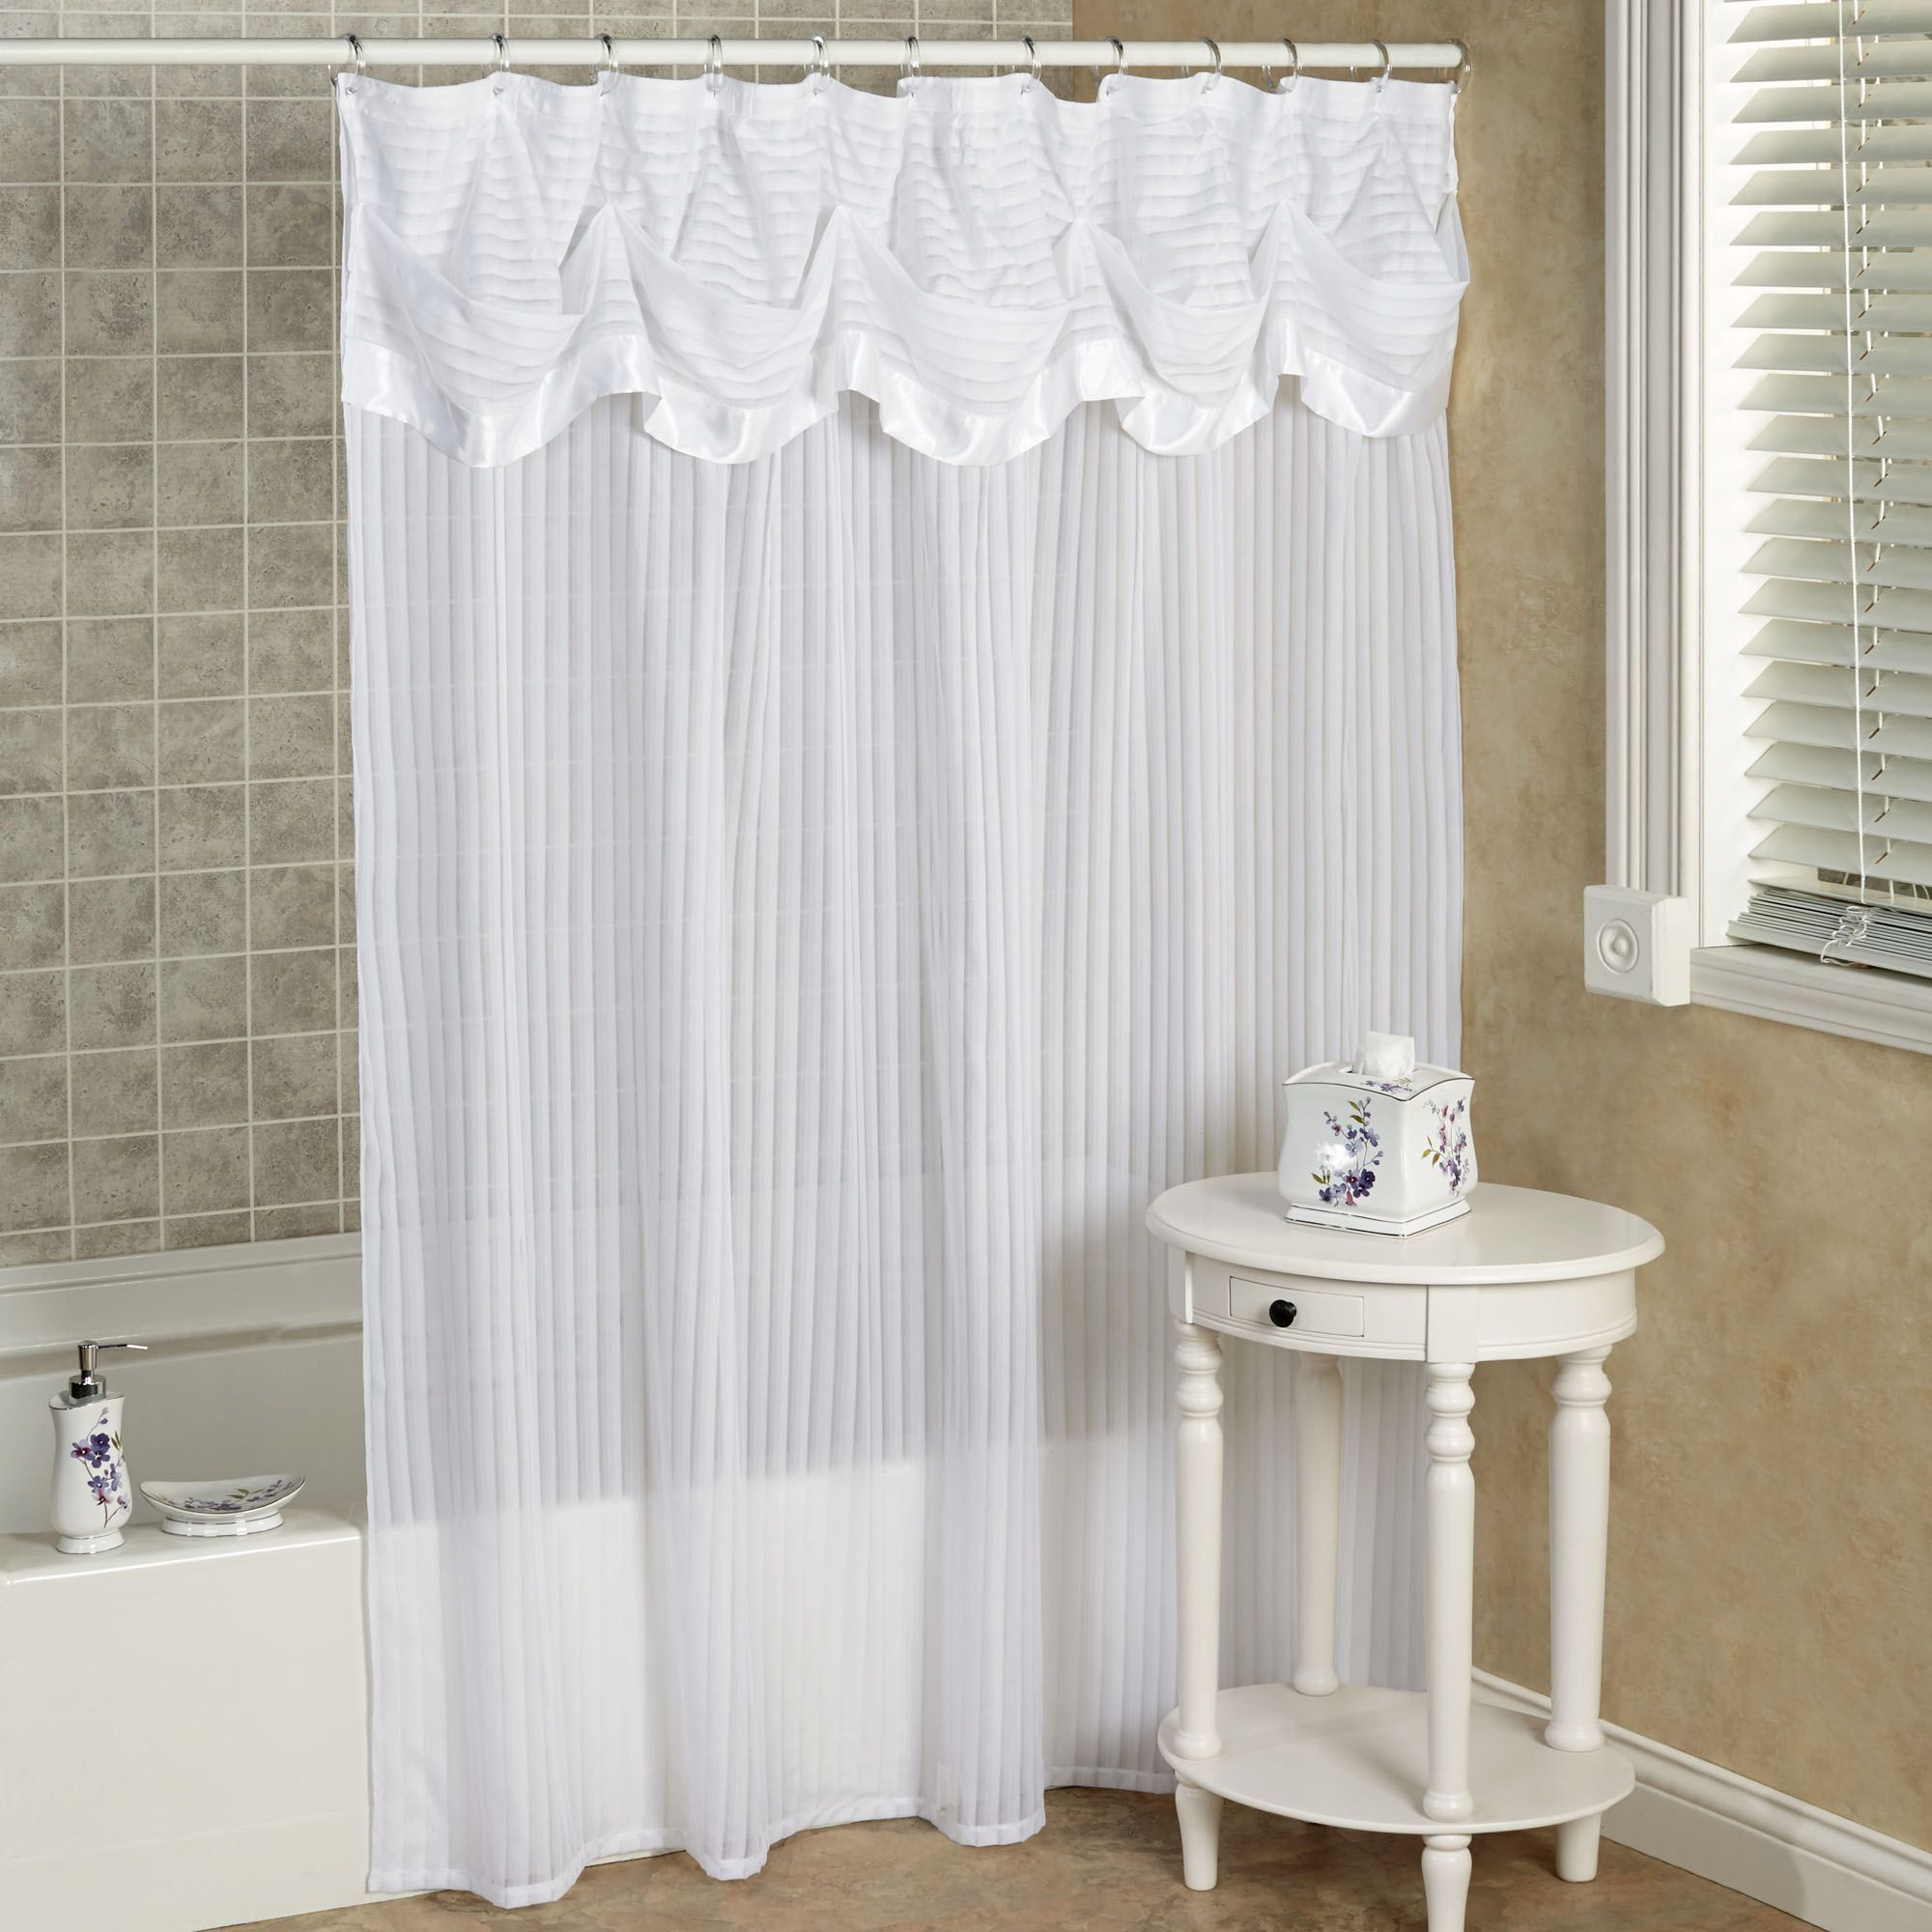 Nimbus Stripe Shower Curtain with Attached Valance | Striped shower ...